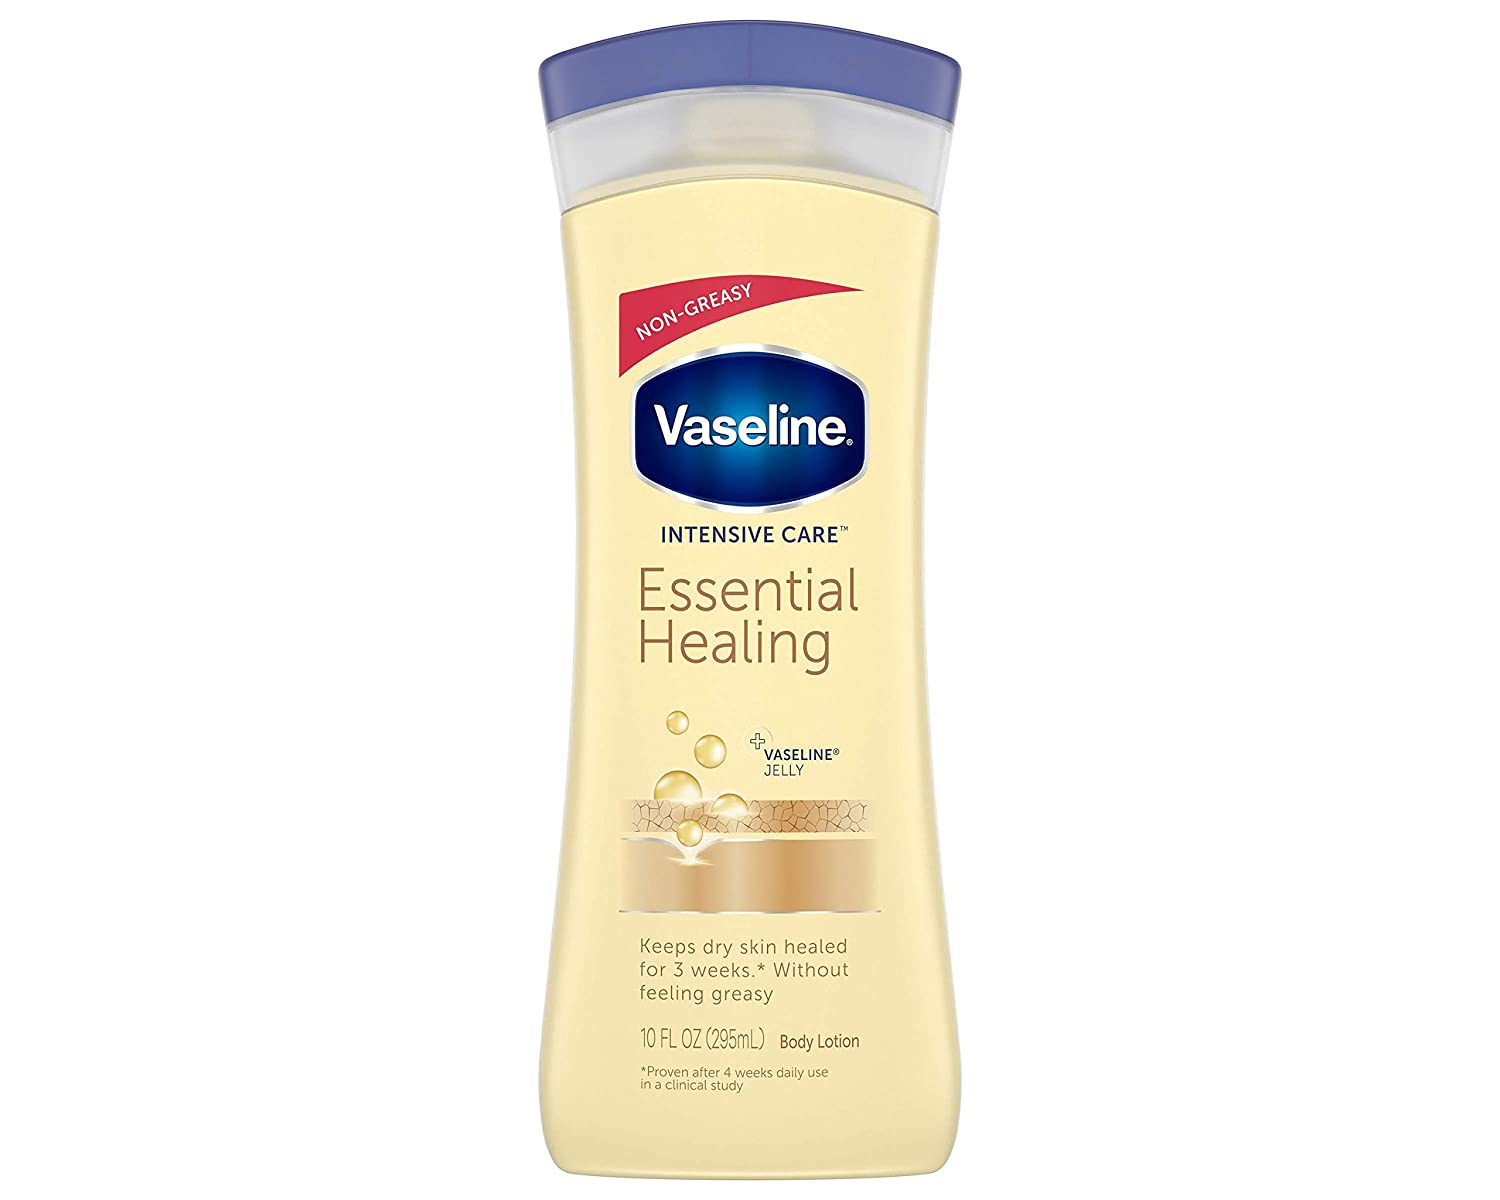 Vaseline Intensive Care Essential Healing Lotion Heal Dry Skin,10 Fl Oz, Pack of 1